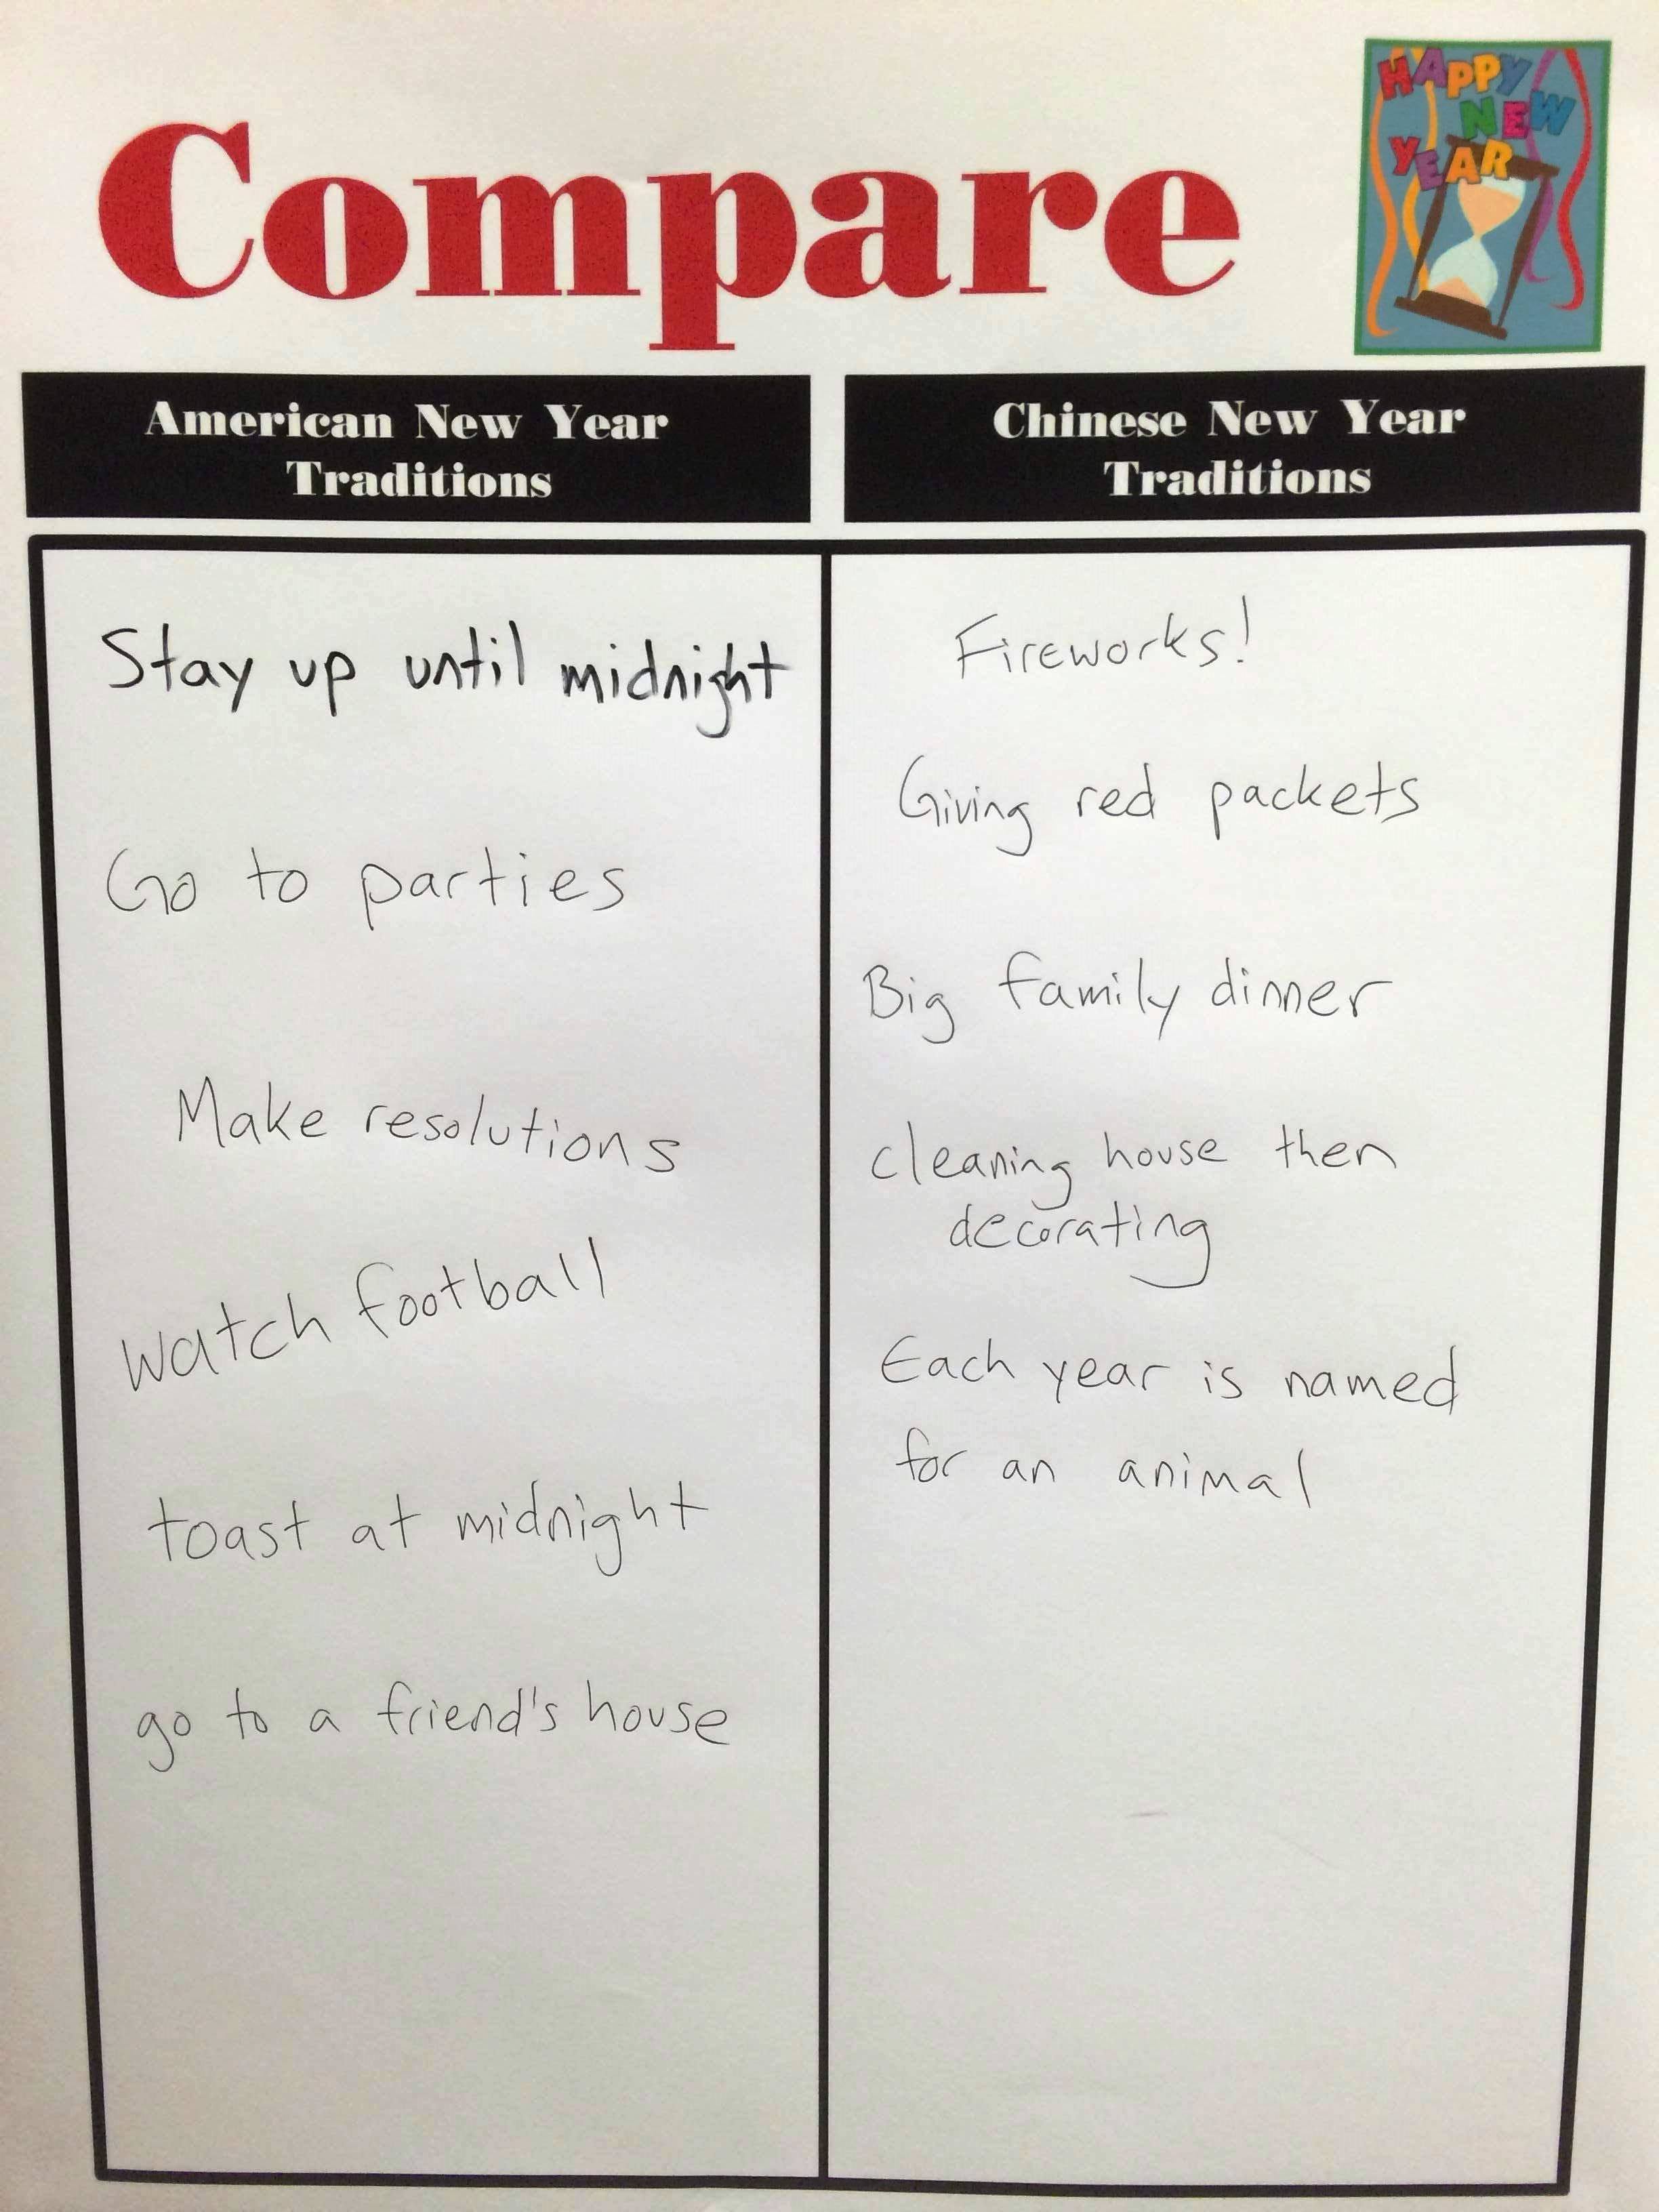 Chinese New Year: Compare, Contrast, and Celebrate! (K-5 Lesson)